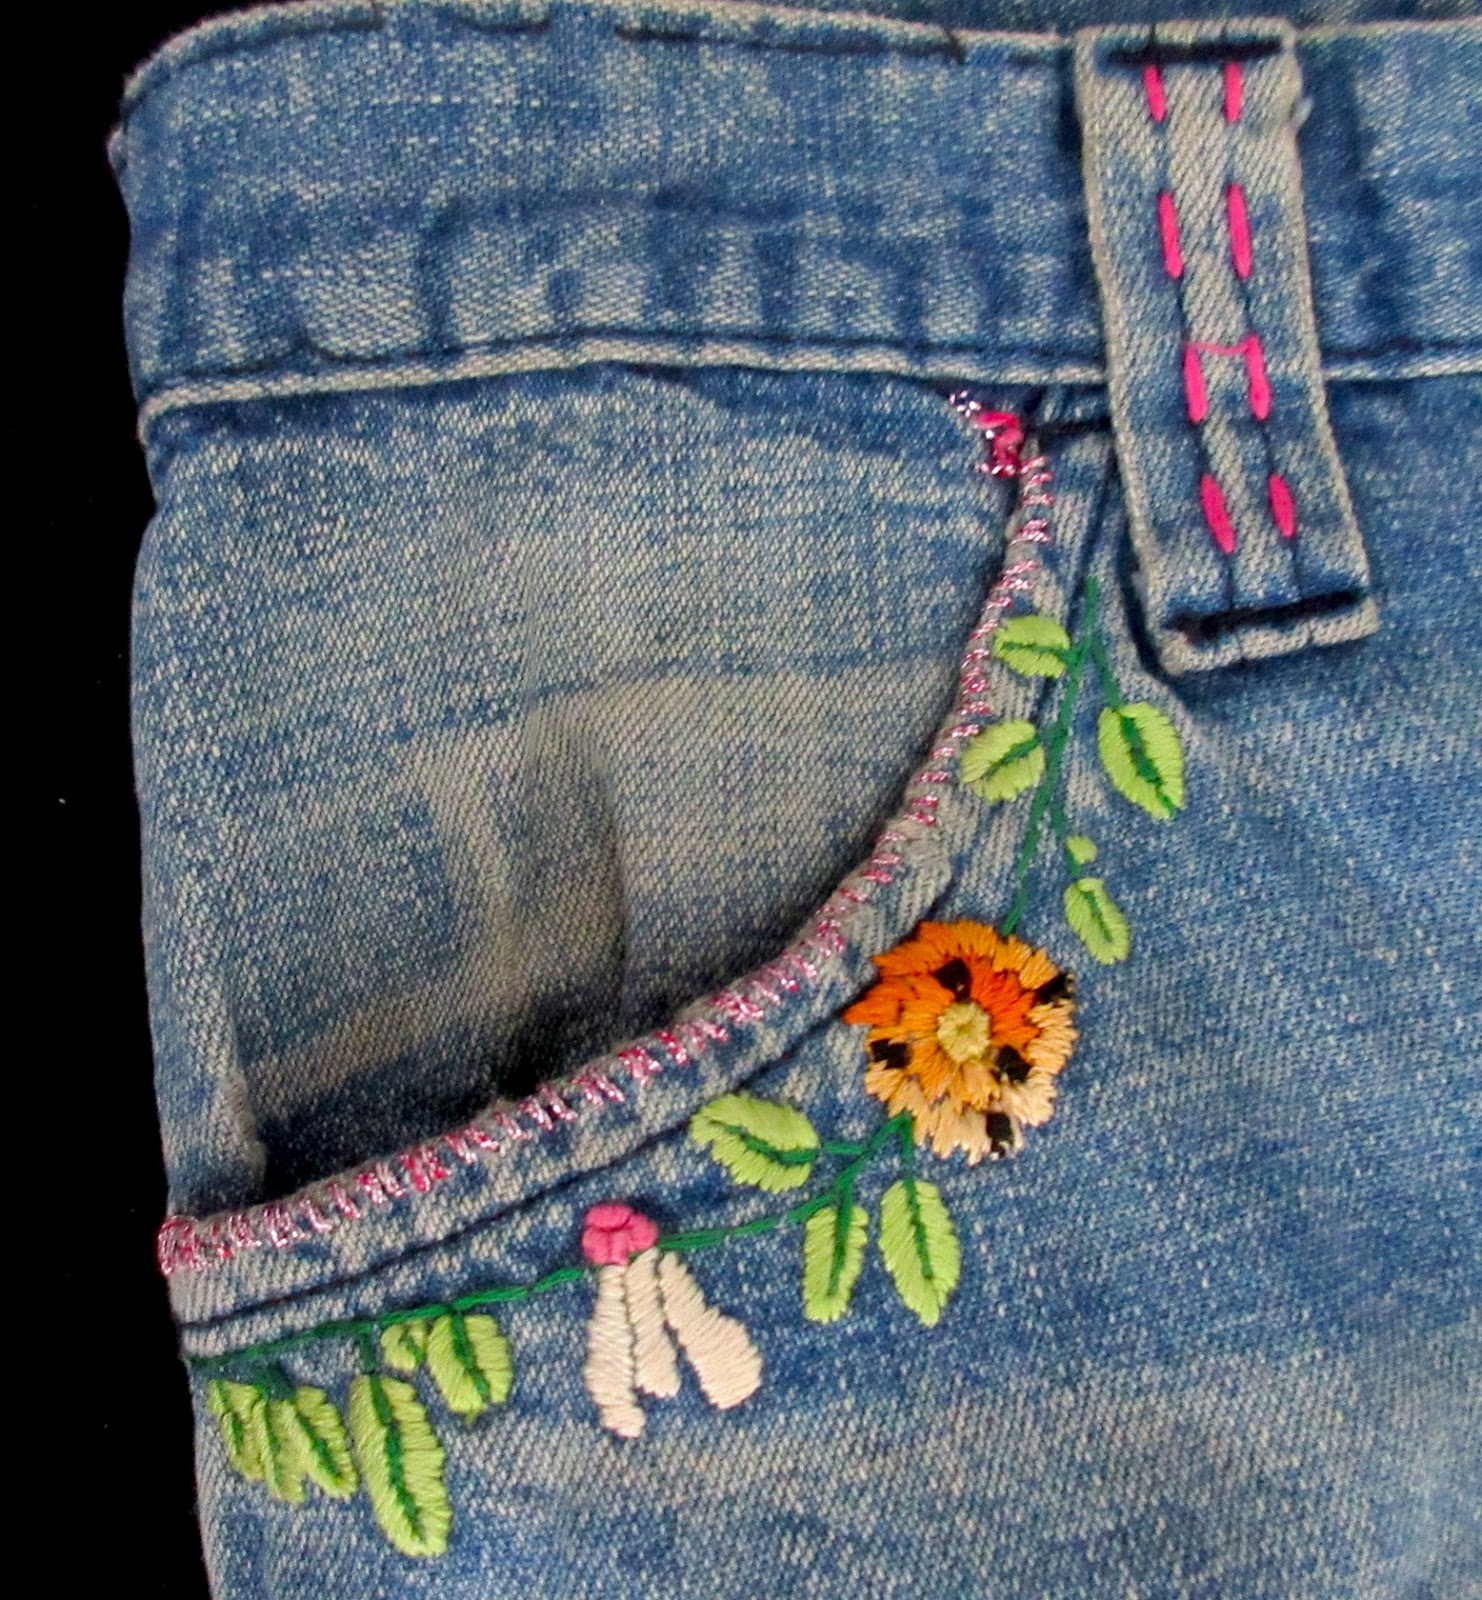 Machine embroidery on denim makaroka